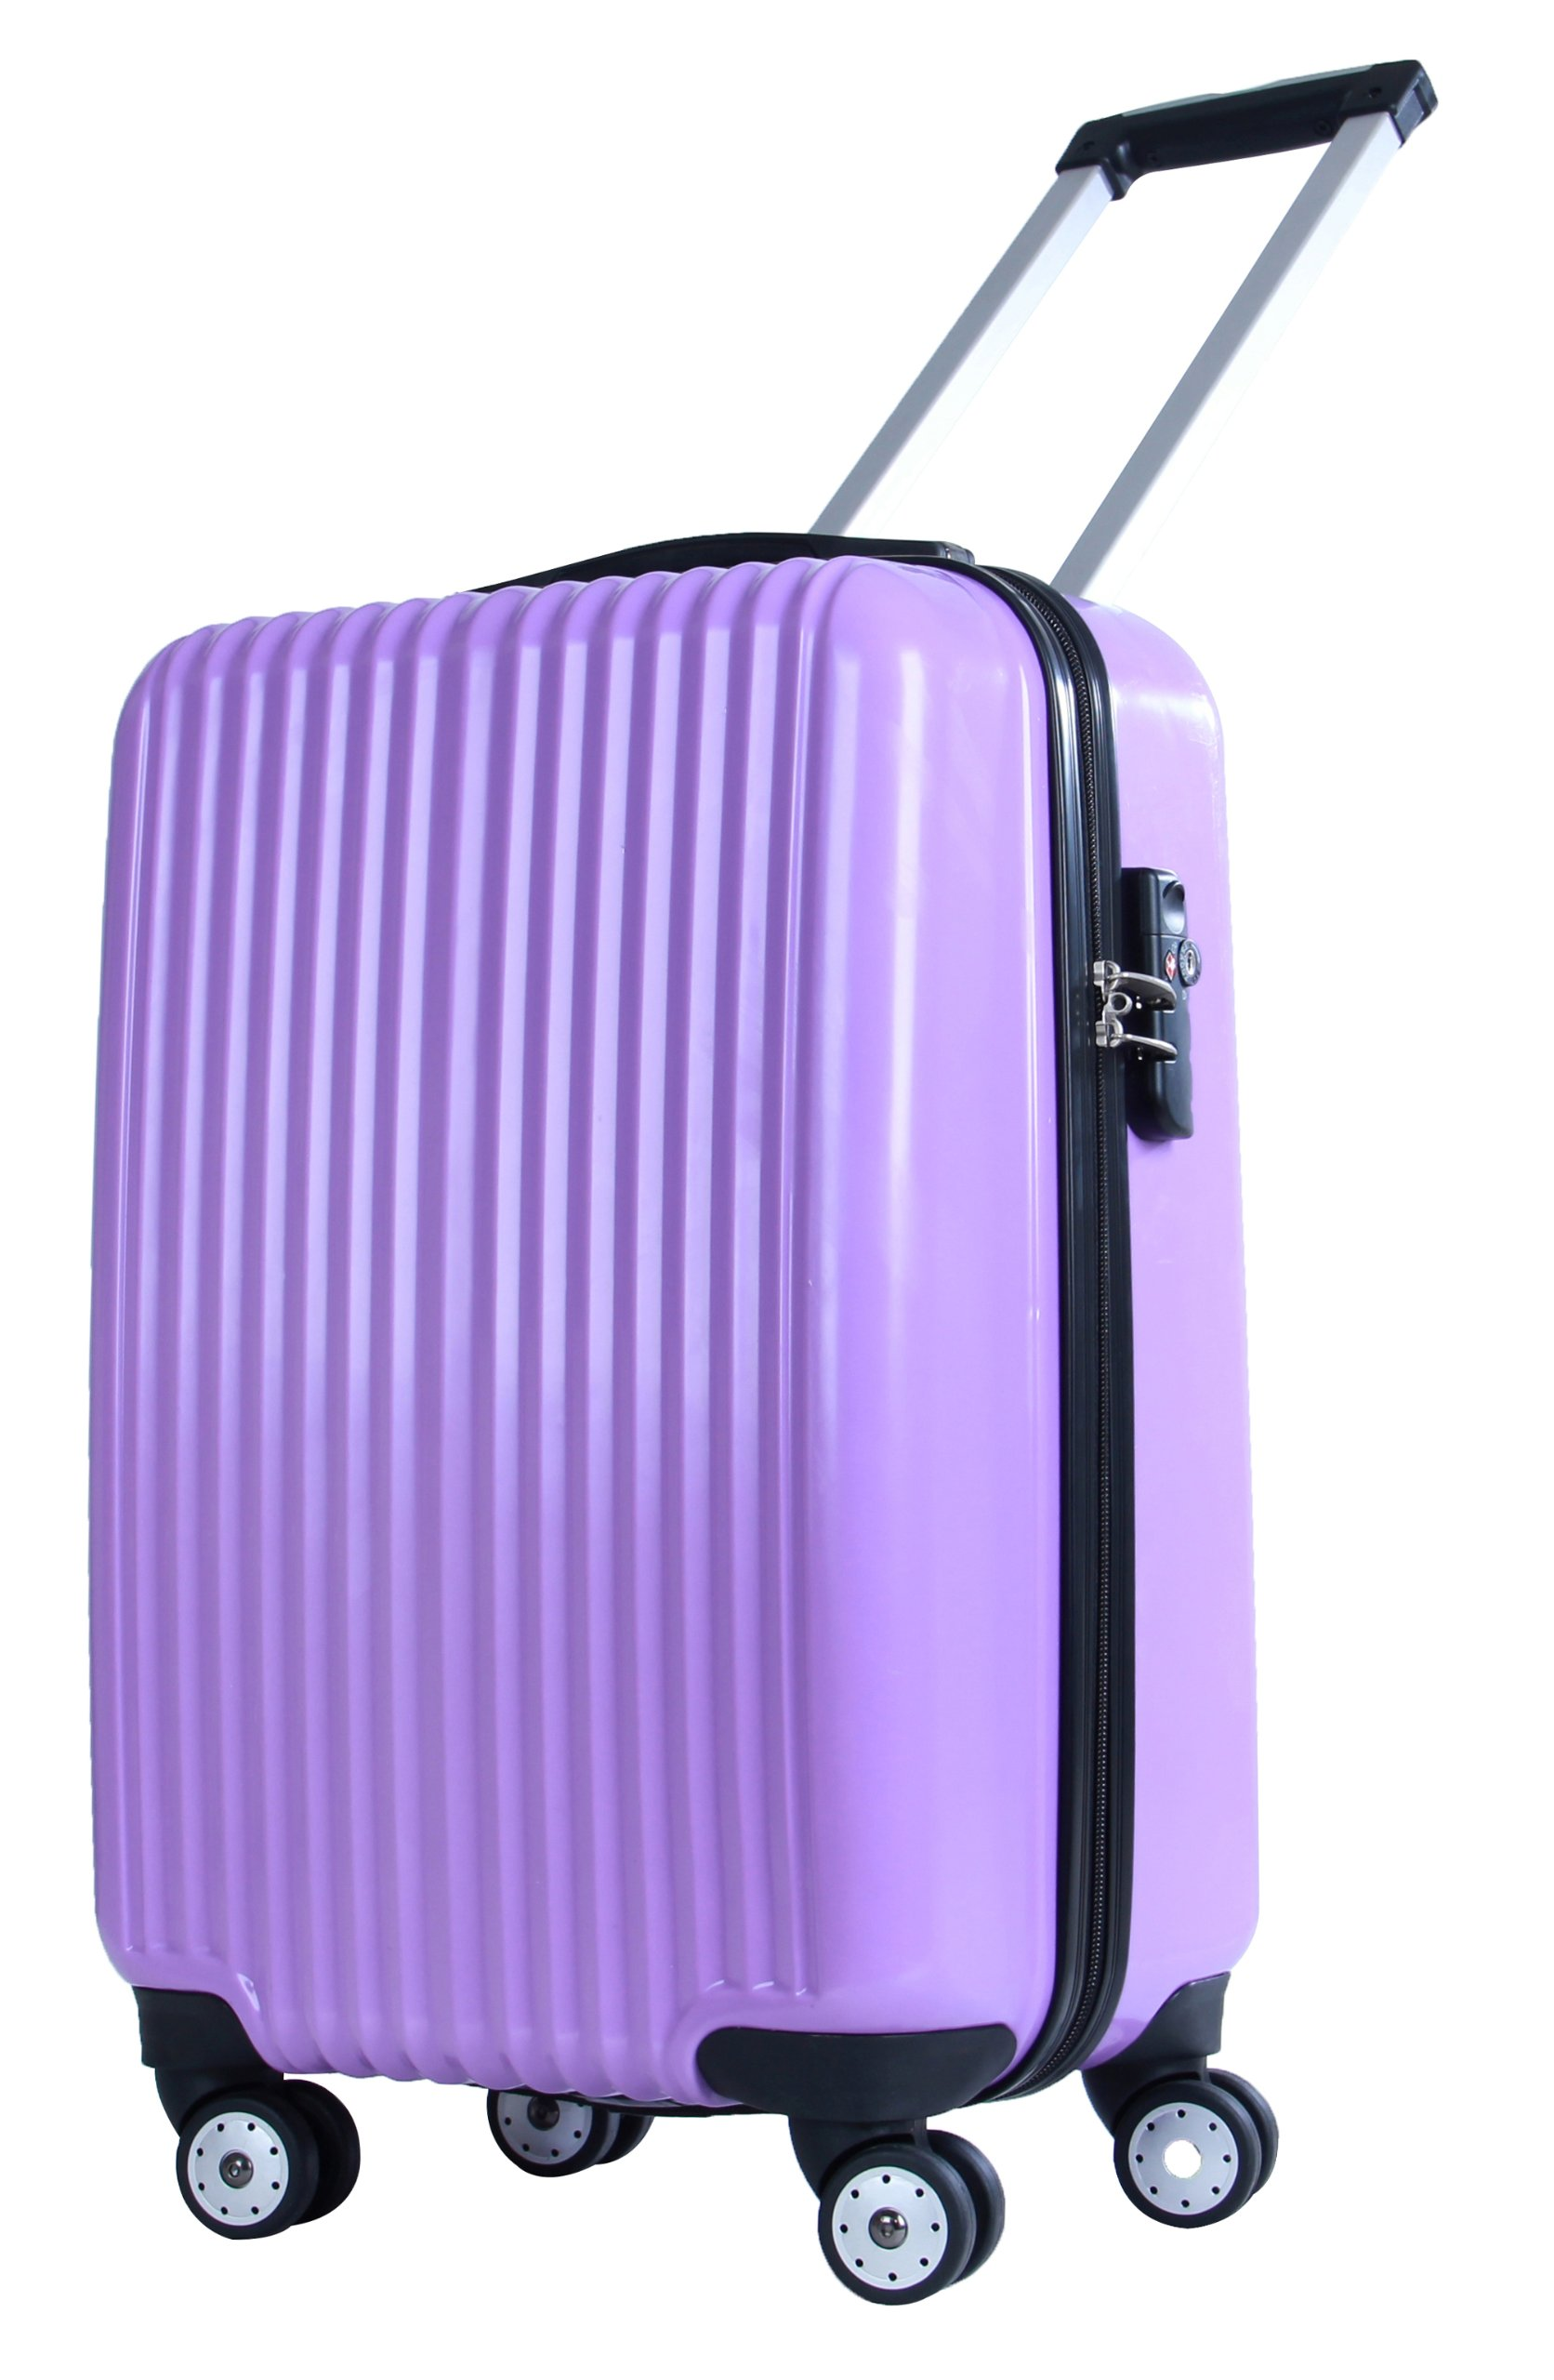 American Flyer Luggage Boson Hard-Case 21 Inch Carry-On, Purple, One Size